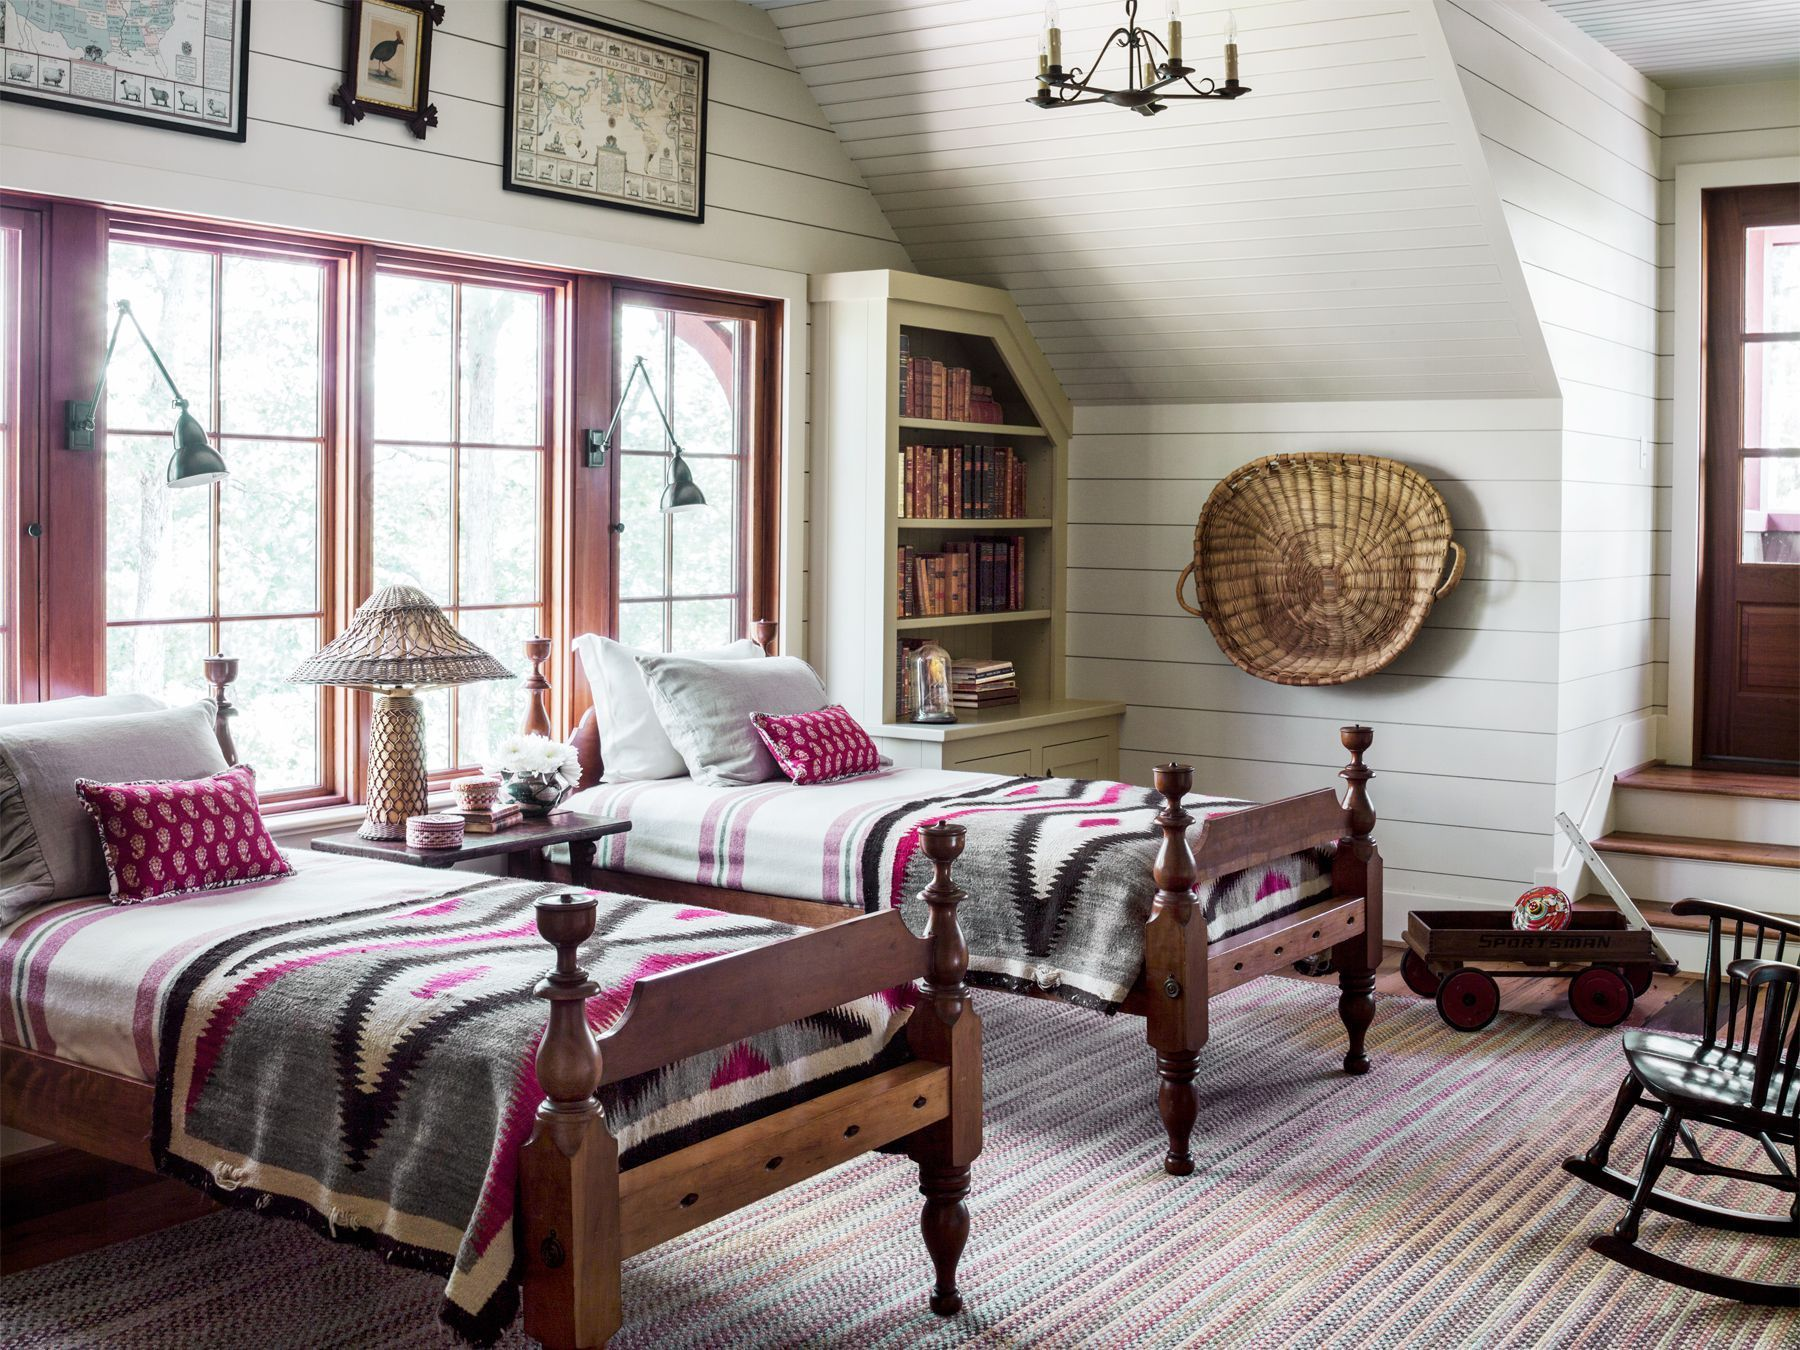 South Carolina Lake House Cabin Rustic And Timeless Cabin Decorating Ideas Lakehouse Bedroom Rustic Lake Houses American Bedroom